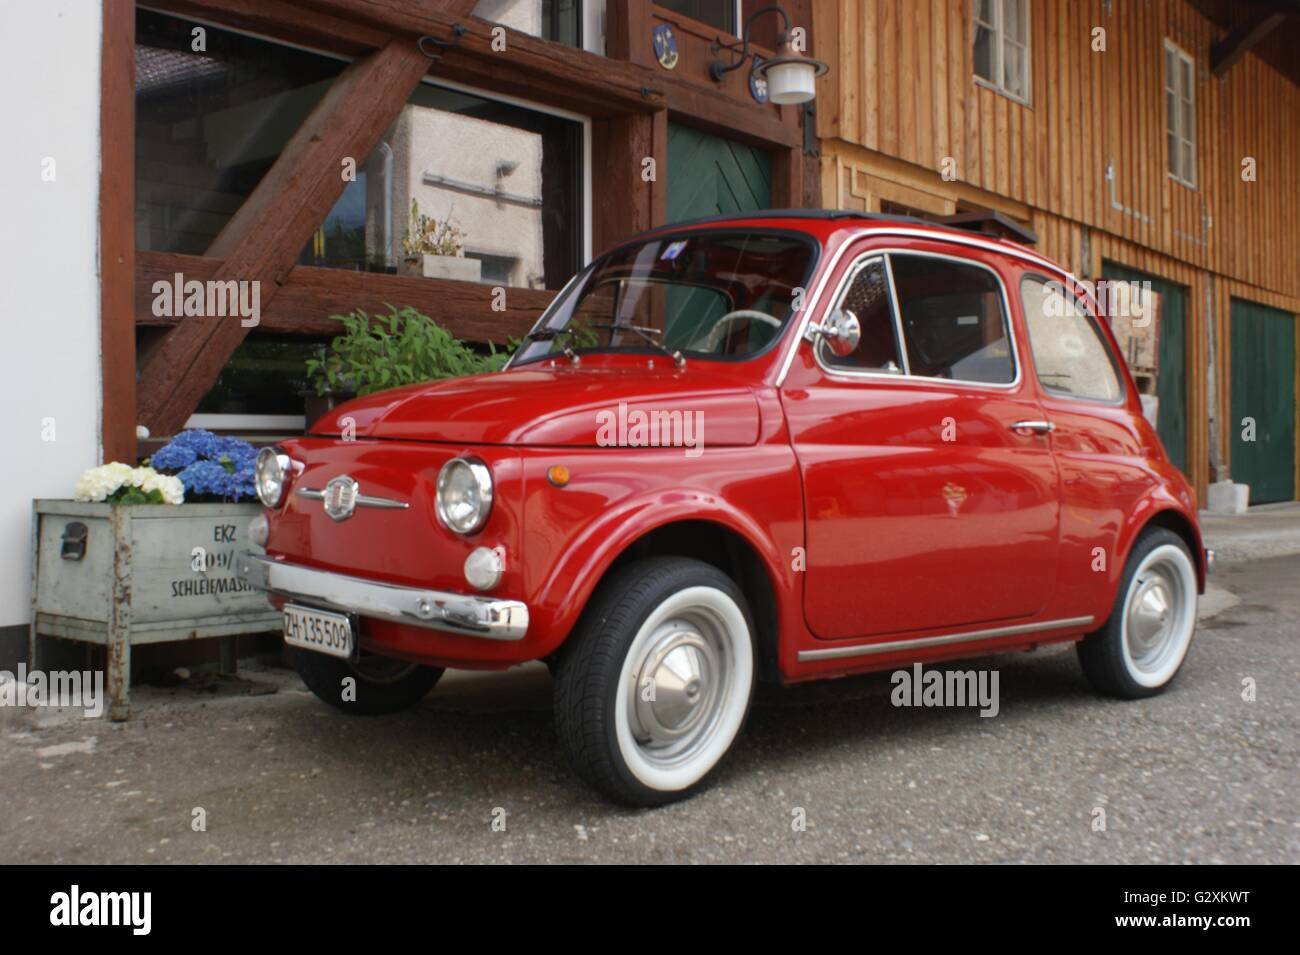 SONY DSC red 1960 Fiat 500 minicar, whitewall tires, in Switzerland, Canton Zurich, cute car, cute wheels, cute, - Stock Image